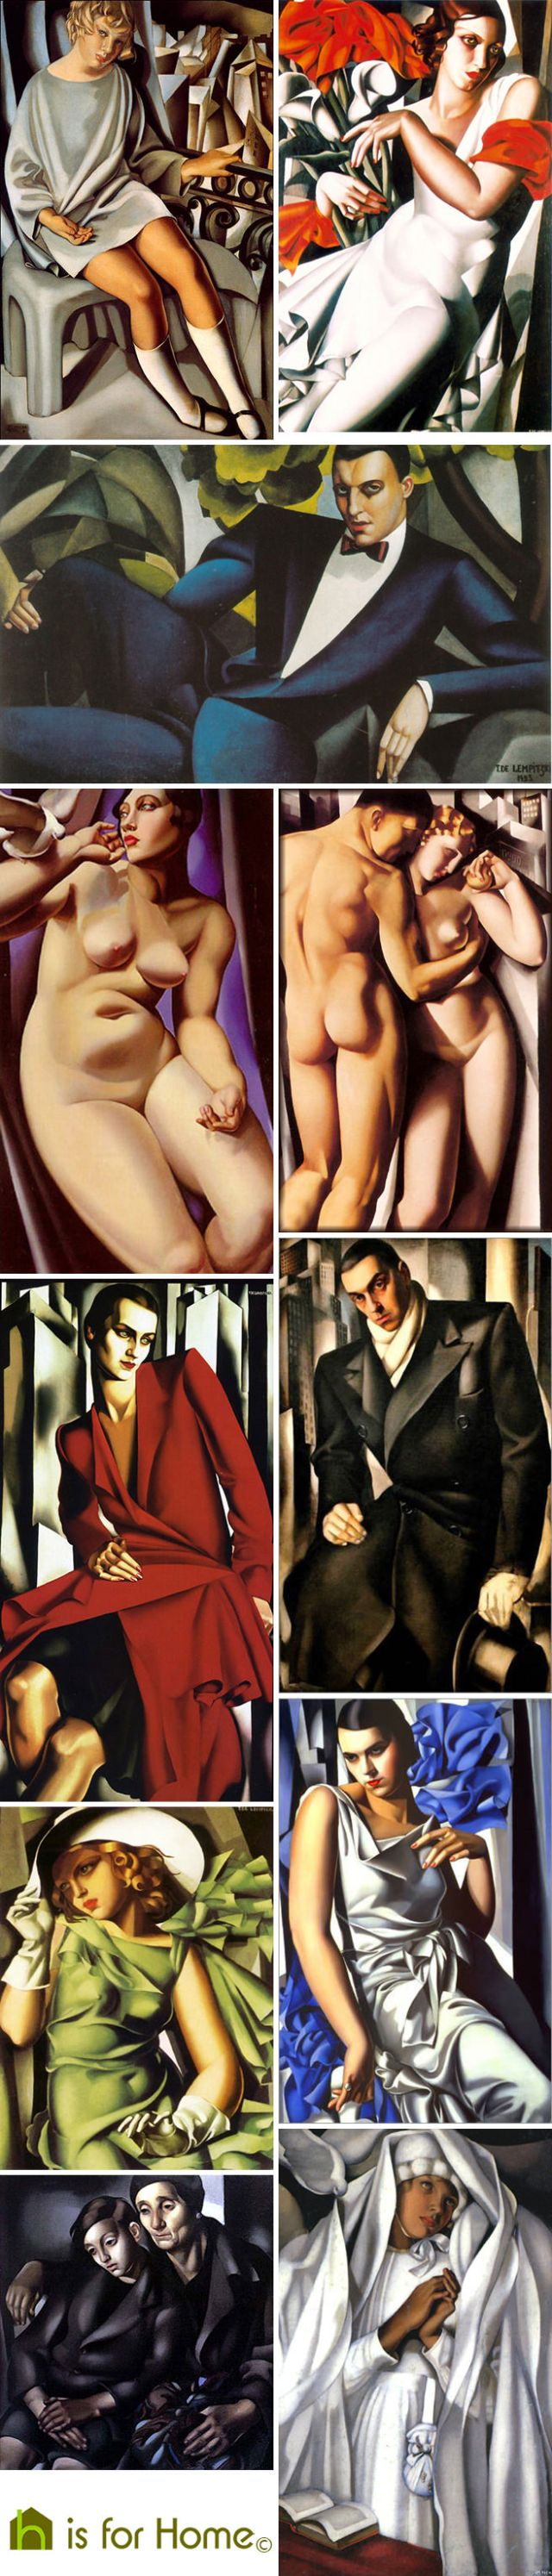 Mosaic of Tamara de Lempicka artworks | H is for Home